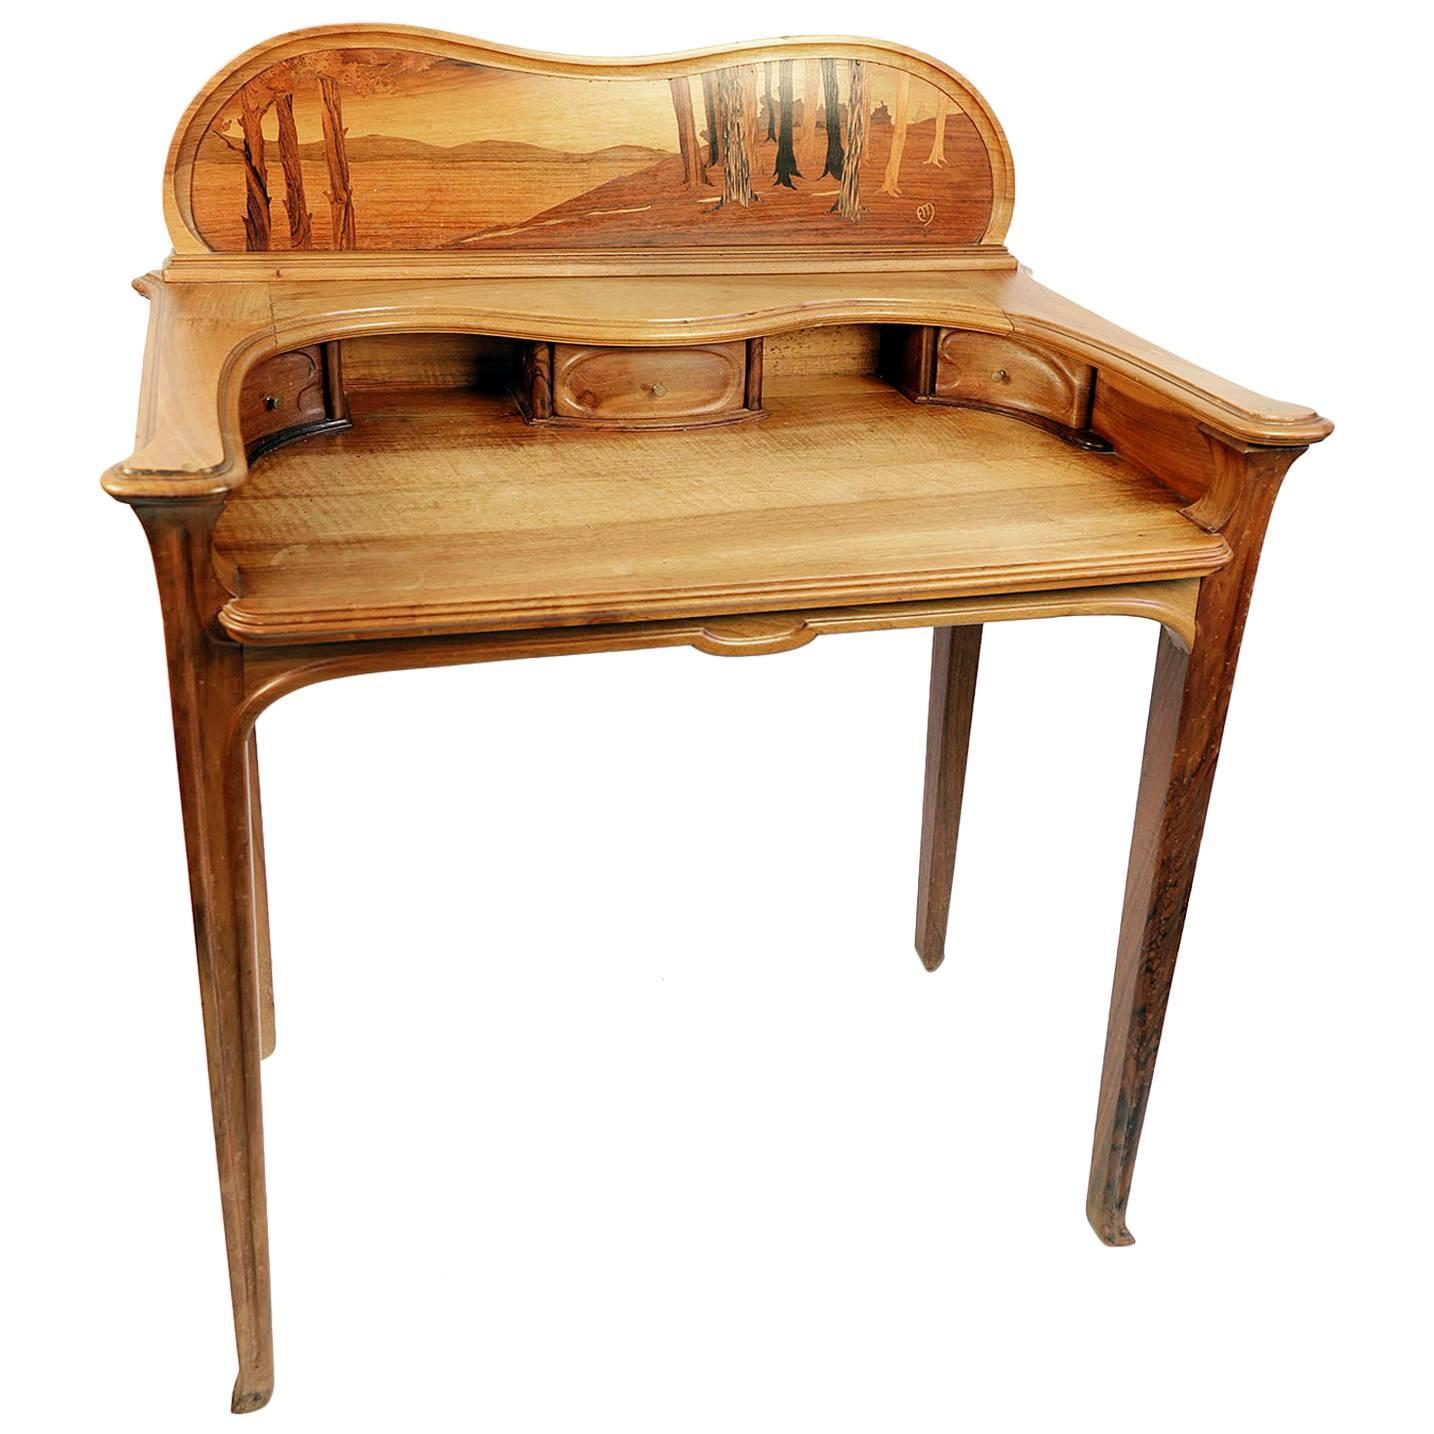 Art Nouveau Inlaid Writing Desk and Chair For Sale at 1stdibs